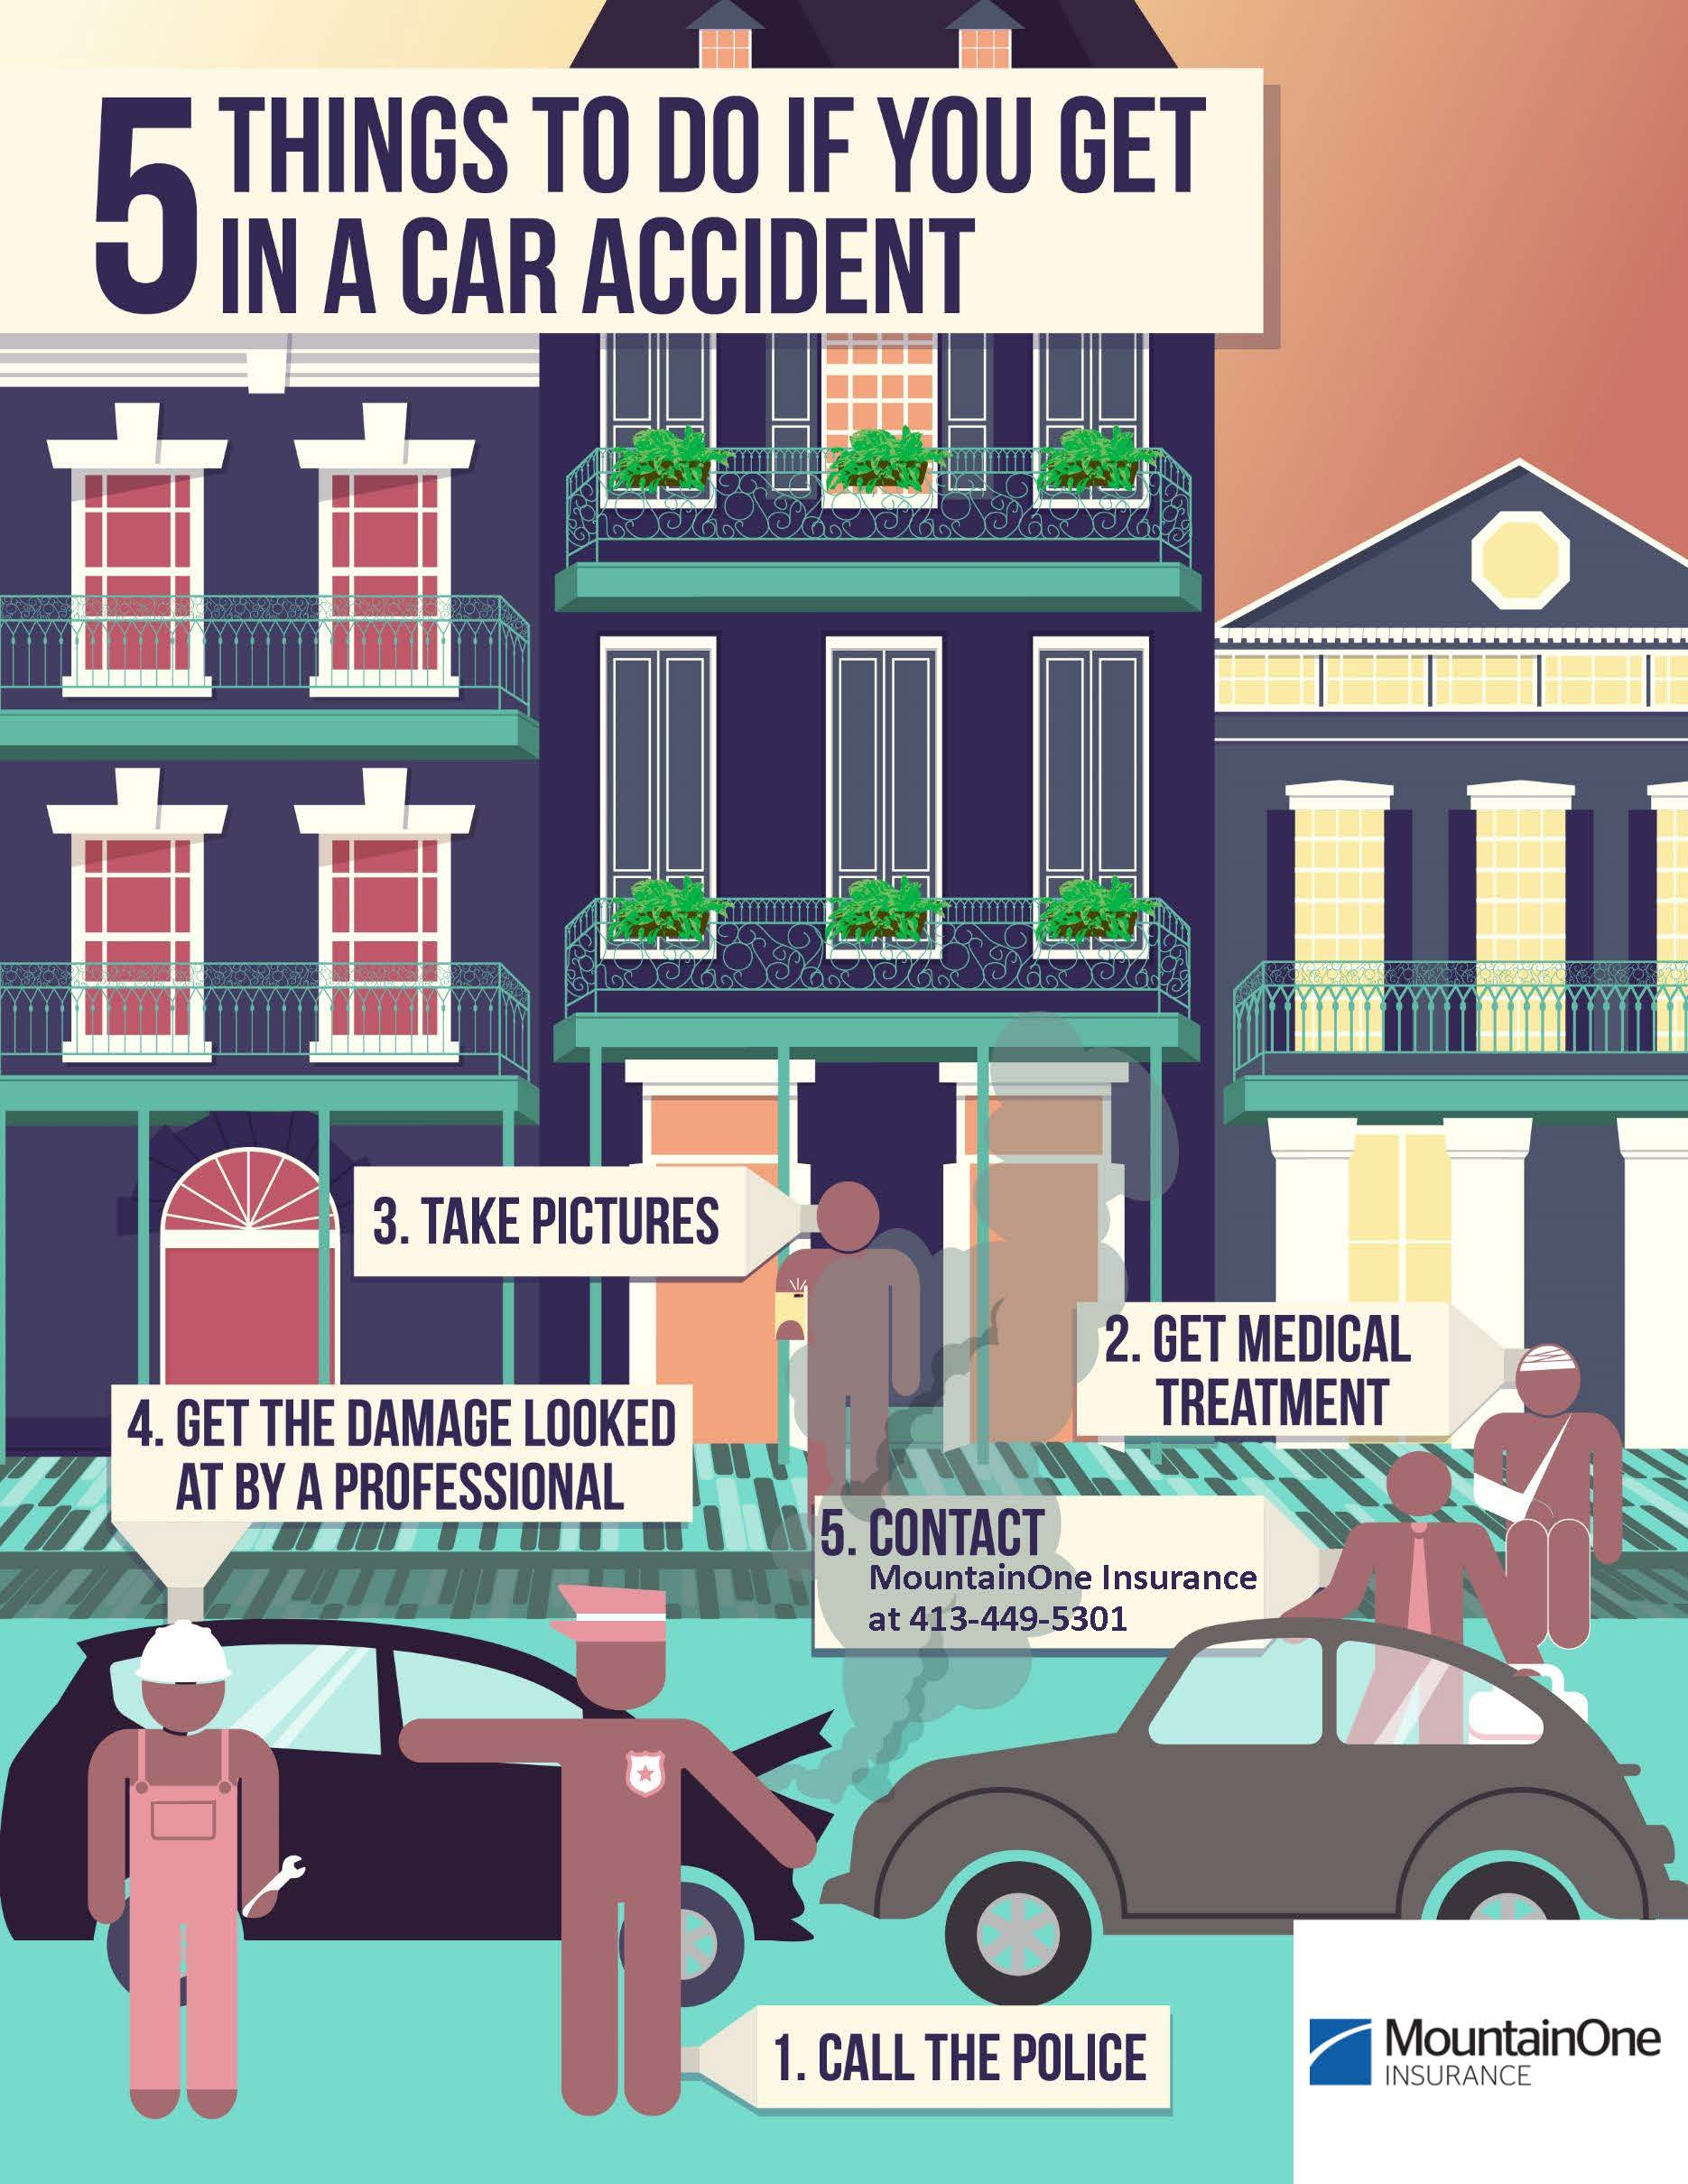 5 things to do if you are in car accident infographic